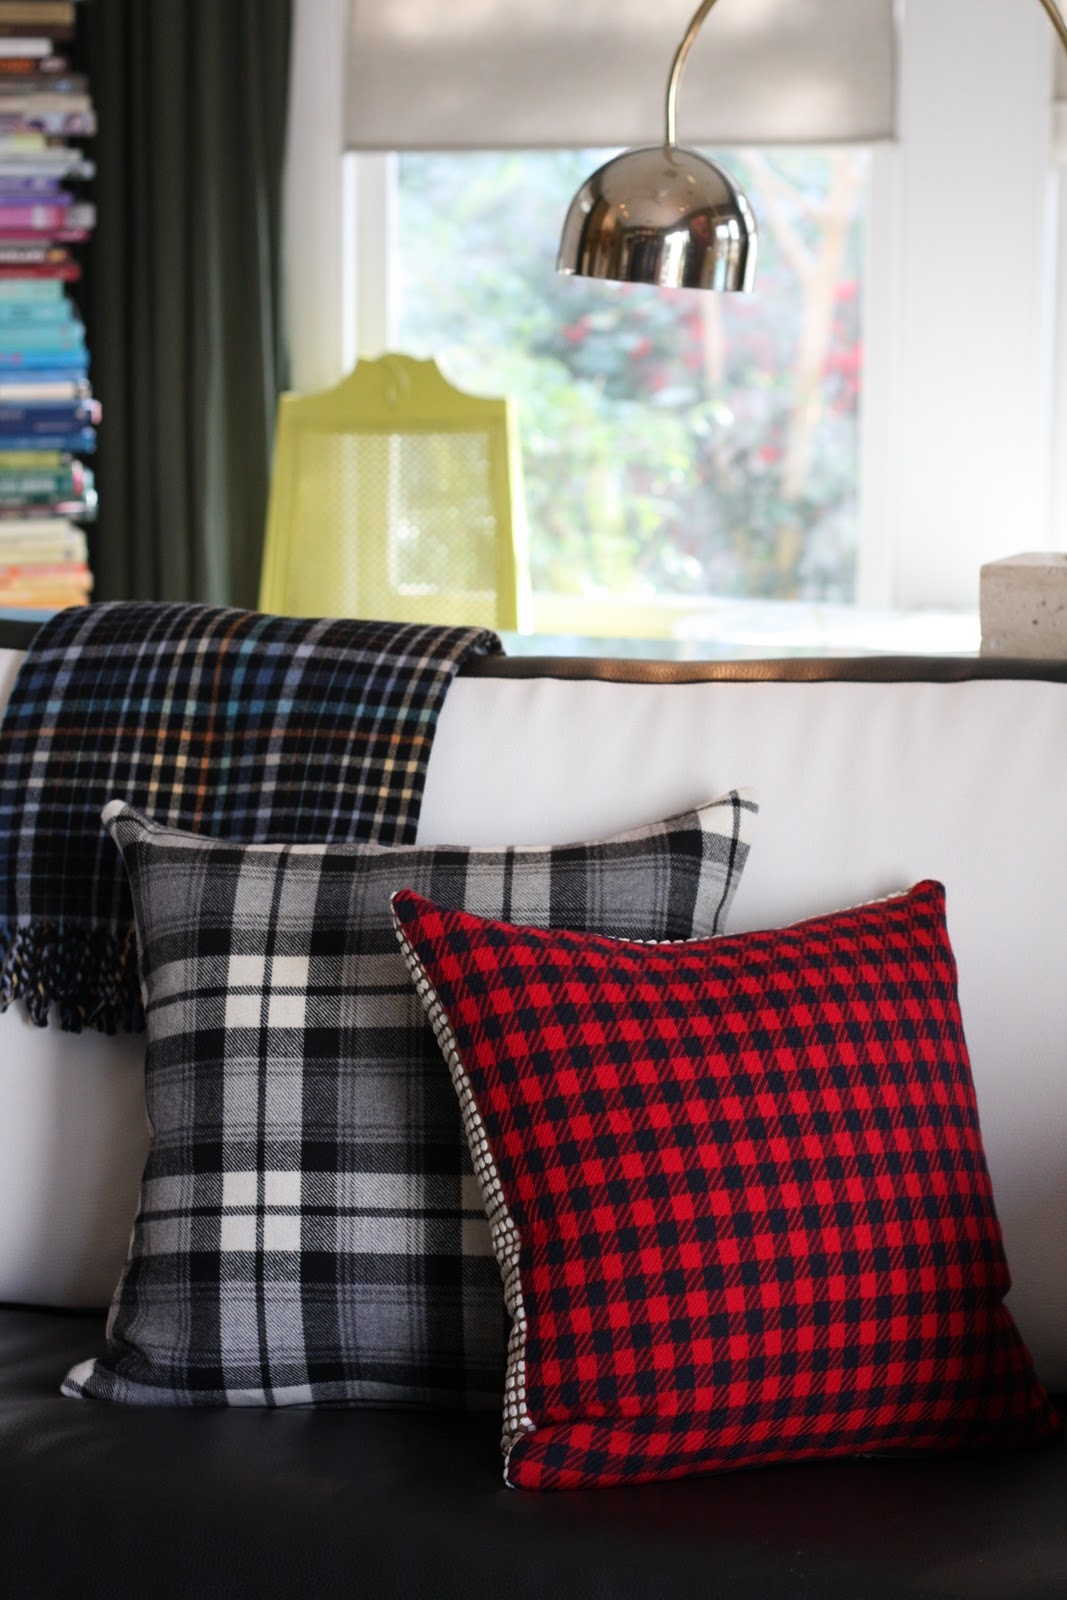 plaid sofa cushions stretch covers for uk christie chase 276 wool pillows